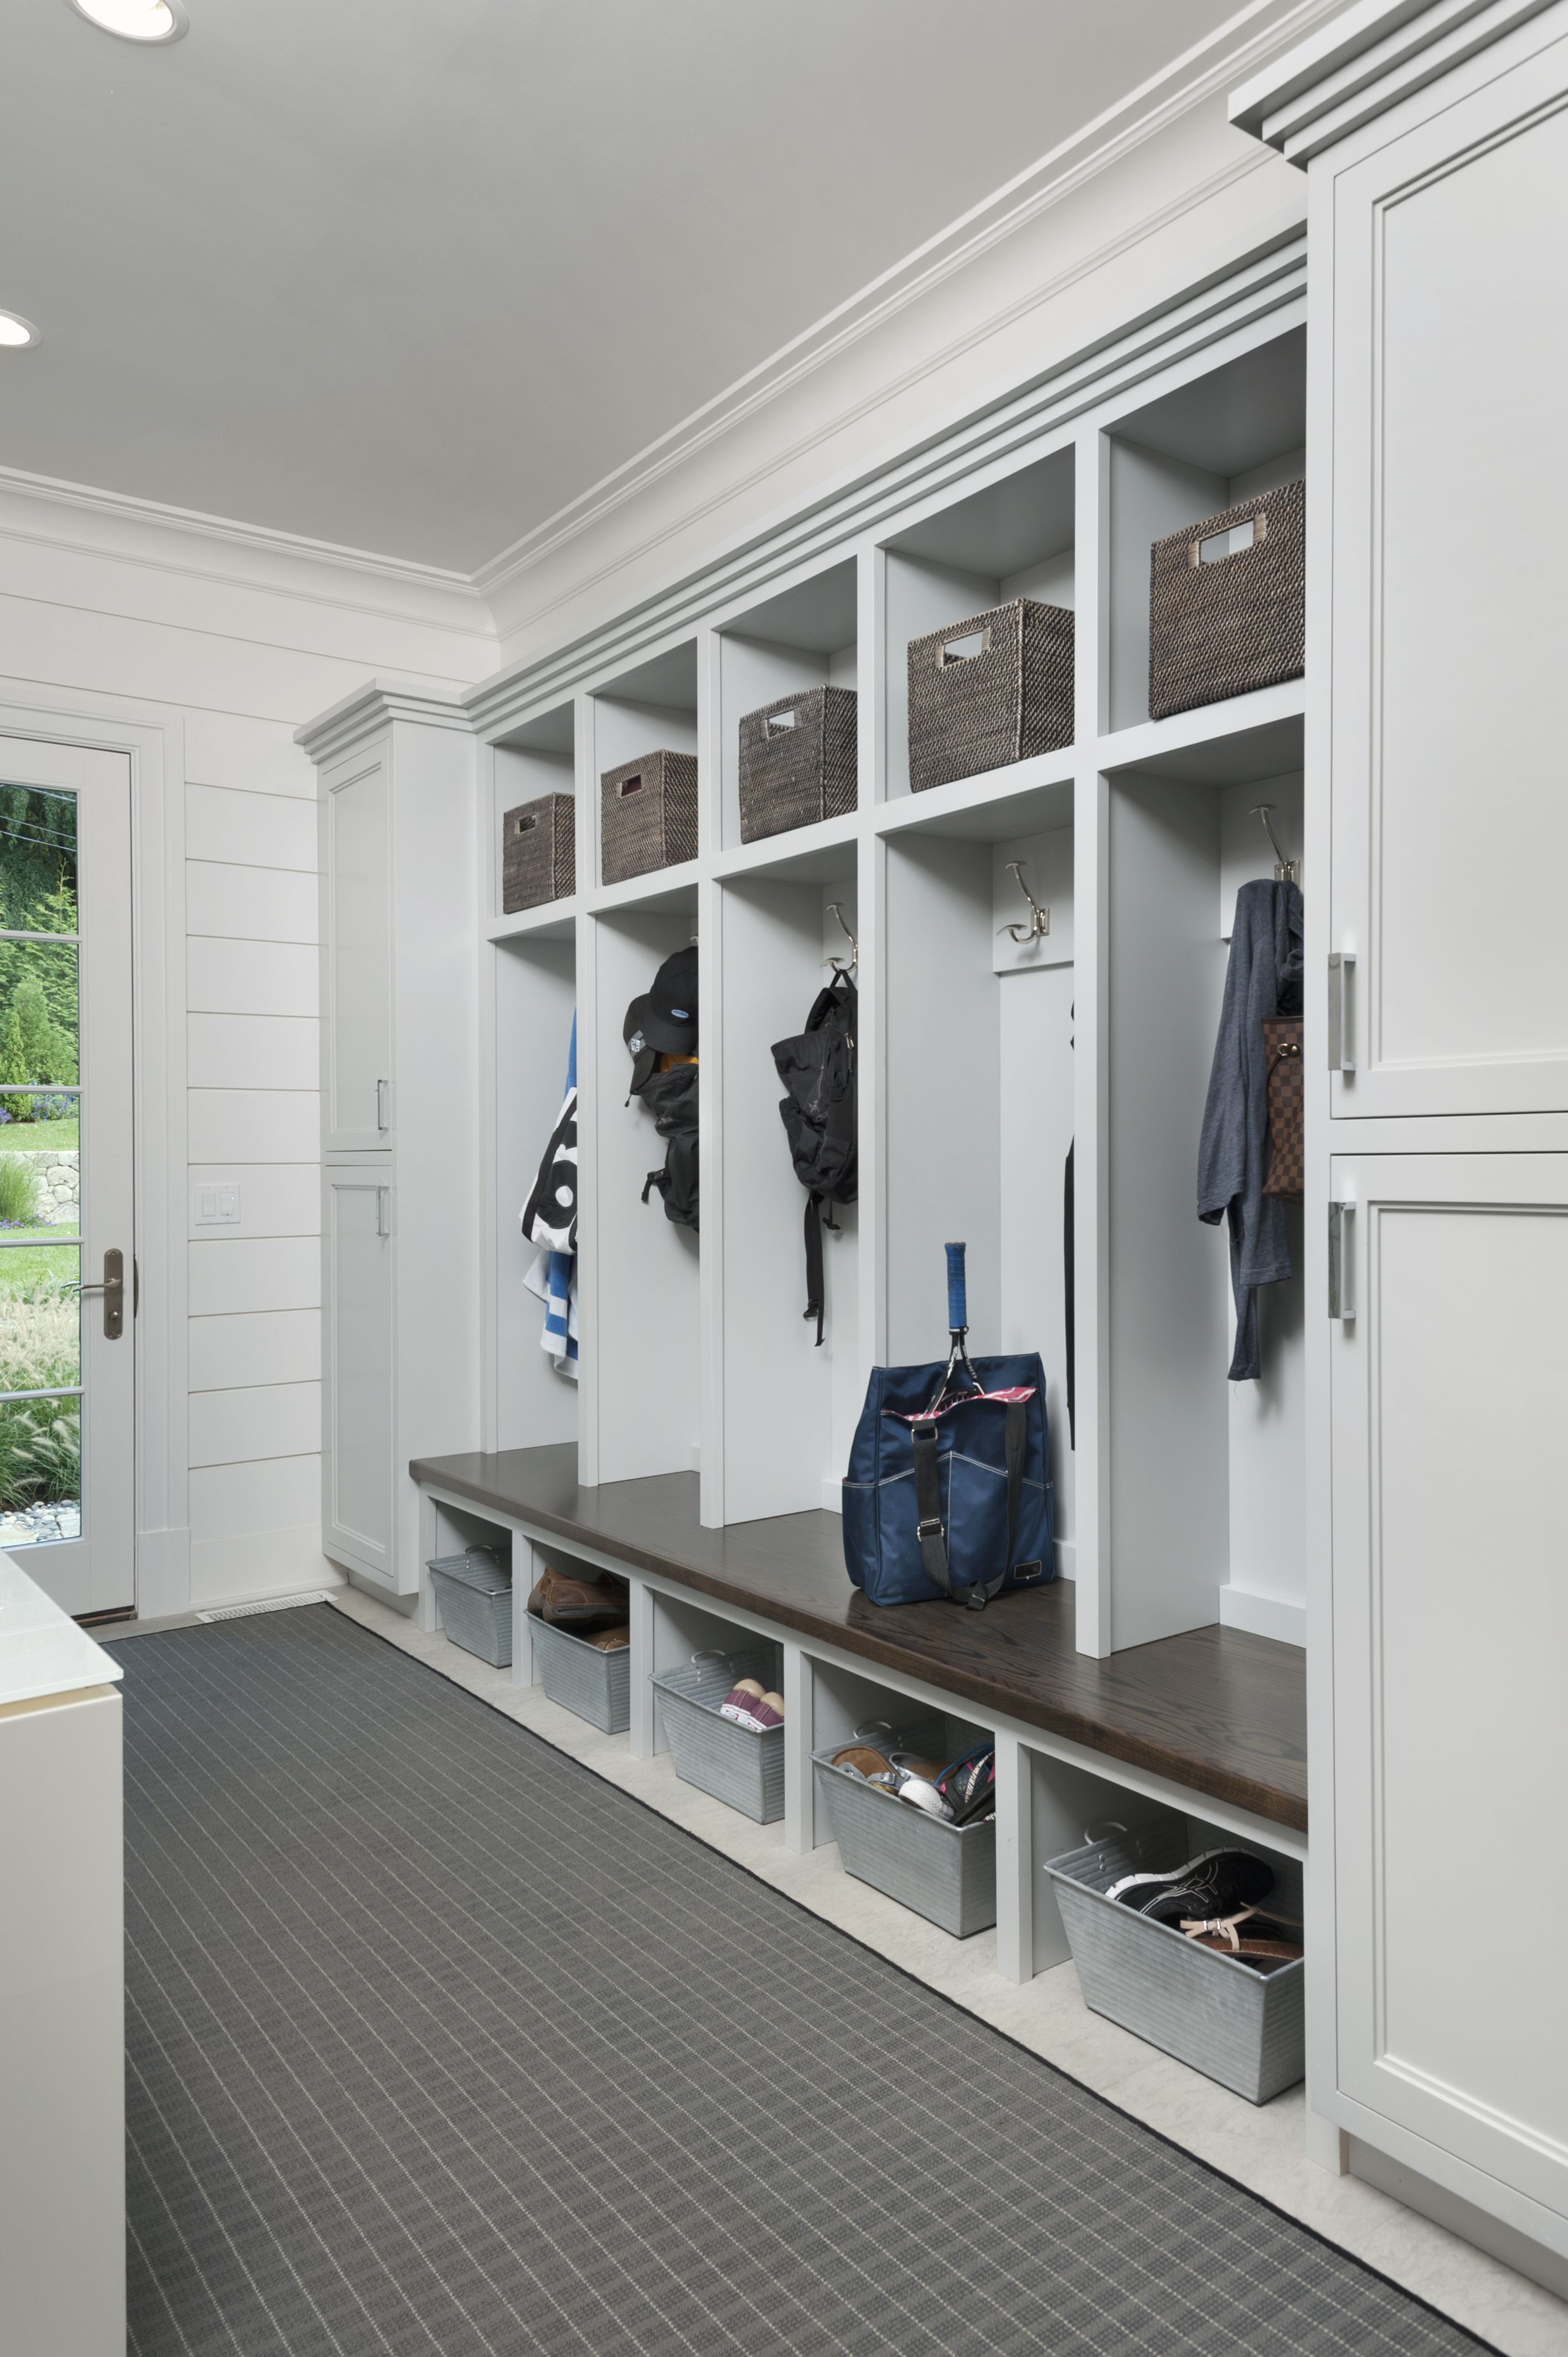 The Mudroom Serves The Dual Purpose Of Providing An Elegant Access Way Into The House From The